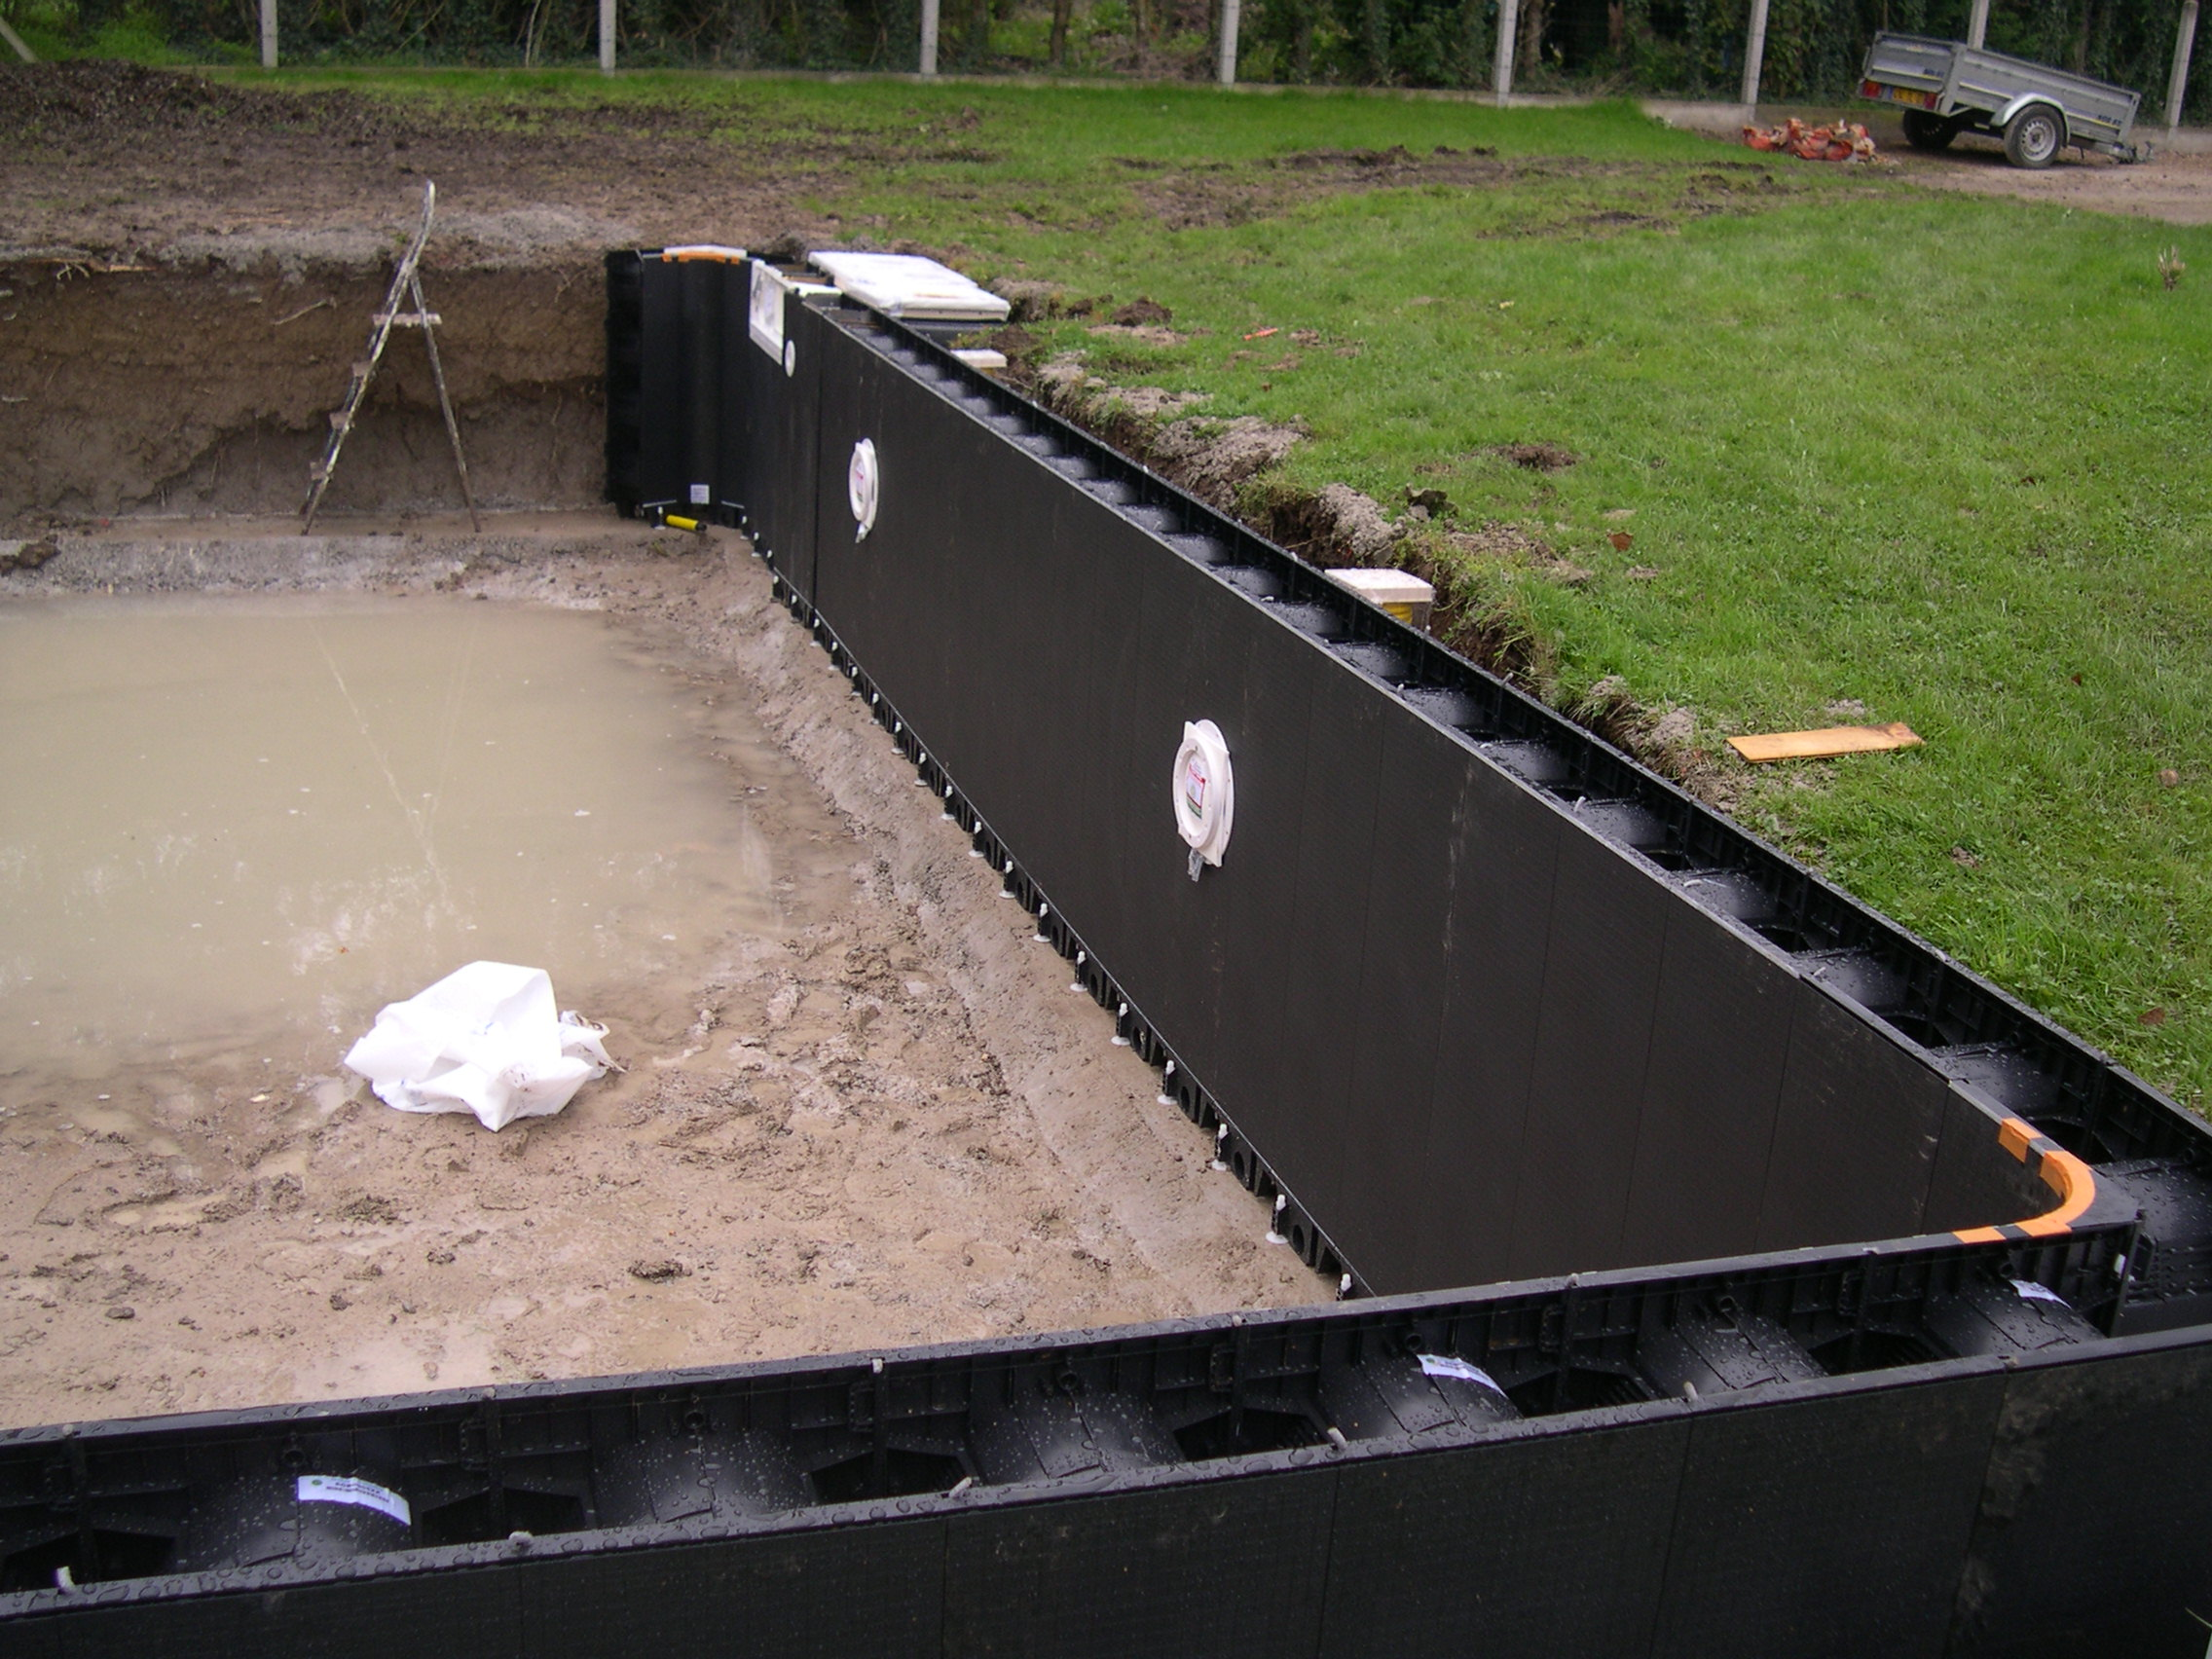 Structure piscine construction piscine magiline 9x for Construction de piscine